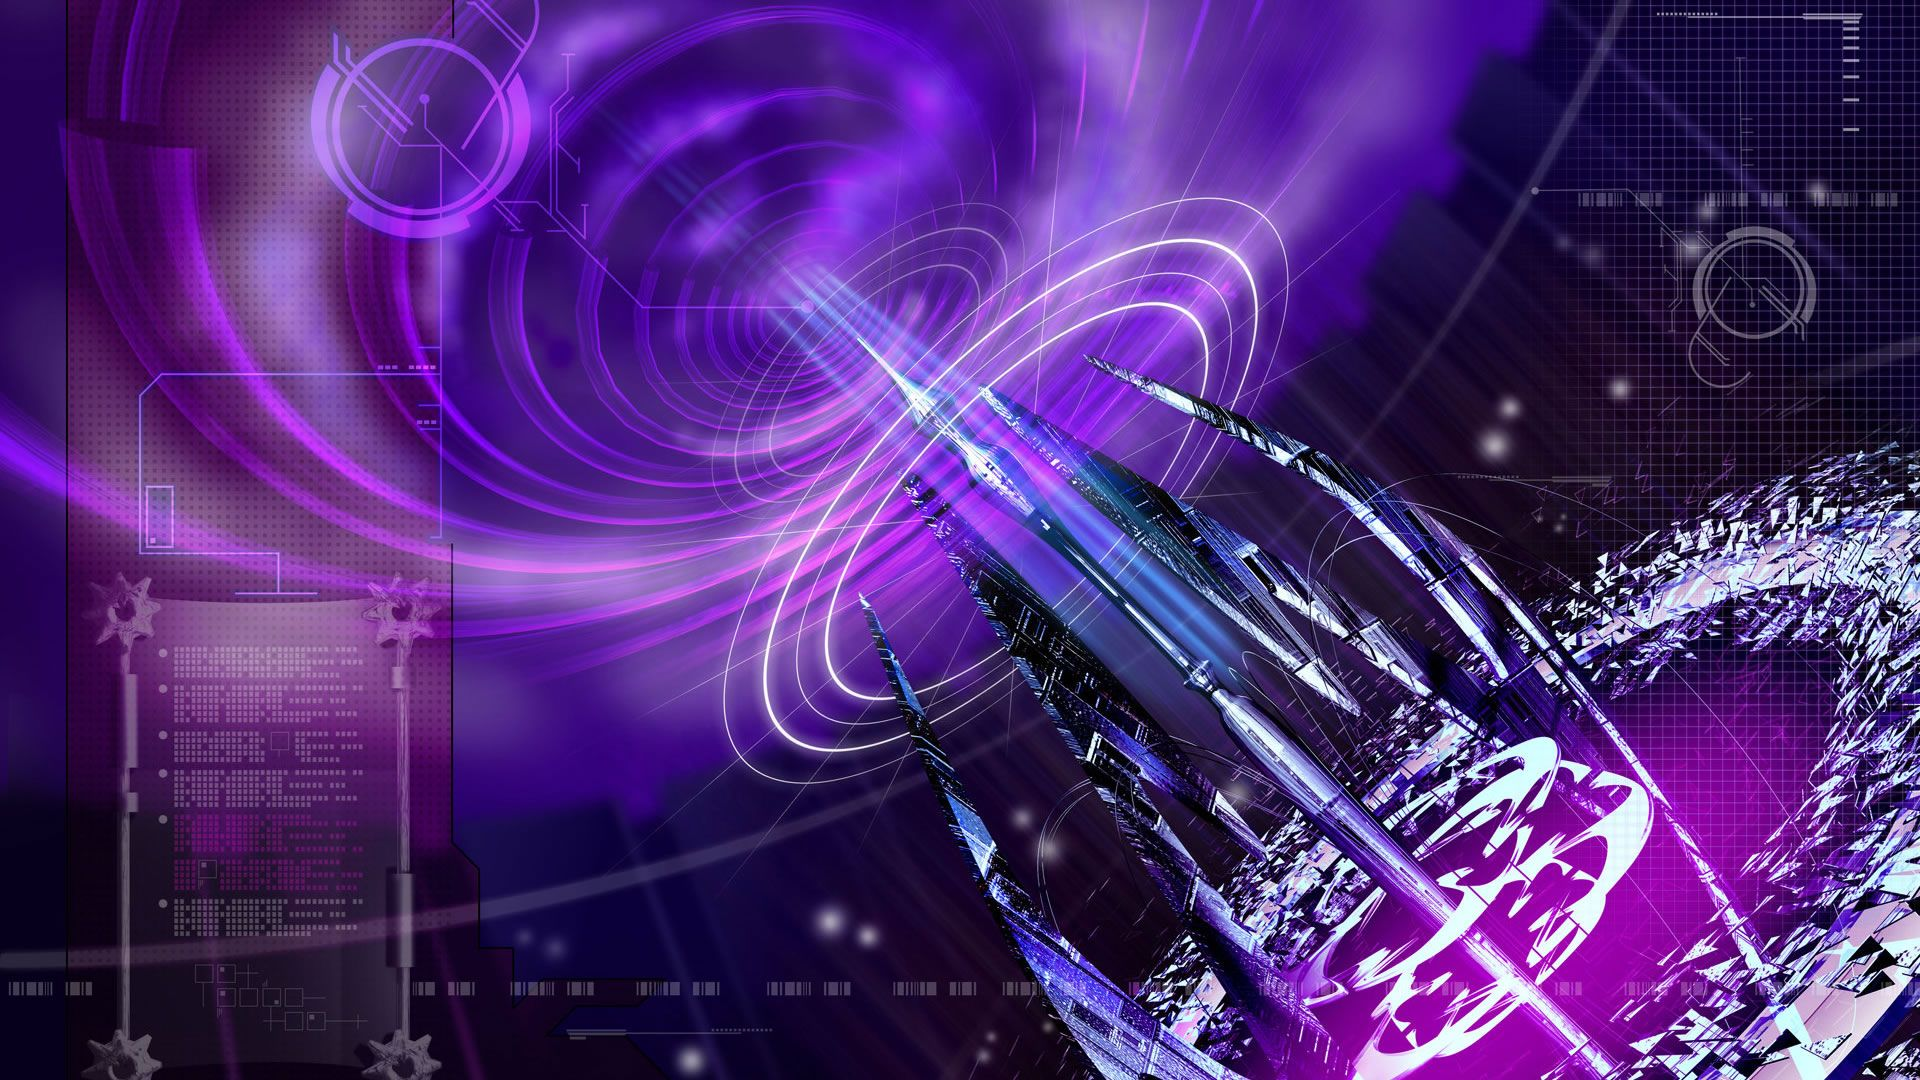 Black And Purple Abstract Widescreen Hd Wallpaper 512: Purple Wallpaper Free: Purple Abstract Wallpaper